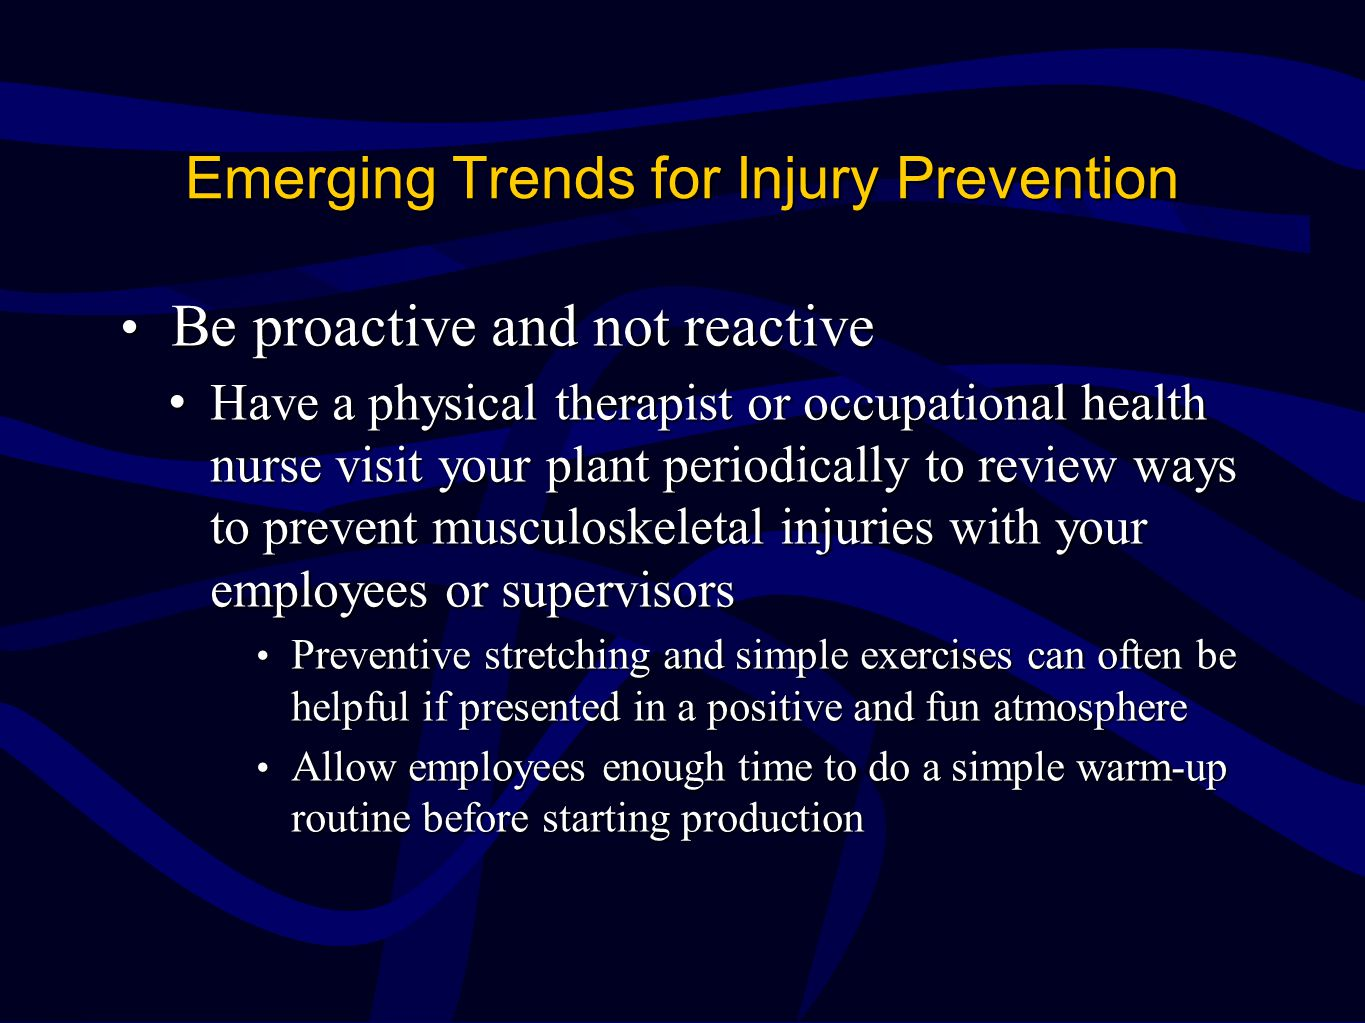 Emerging Trends for Injury Prevention Be proactive and not reactive Be proactive and not reactive Have a physical therapist or occupational health nurse visit your plant periodically to review ways to prevent musculoskeletal injuries with your employees or supervisorsHave a physical therapist or occupational health nurse visit your plant periodically to review ways to prevent musculoskeletal injuries with your employees or supervisors Preventive stretching and simple exercises can often be helpful if presented in a positive and fun atmosphere Preventive stretching and simple exercises can often be helpful if presented in a positive and fun atmosphere Allow employees enough time to do a simple warm-up routine before starting production Allow employees enough time to do a simple warm-up routine before starting production